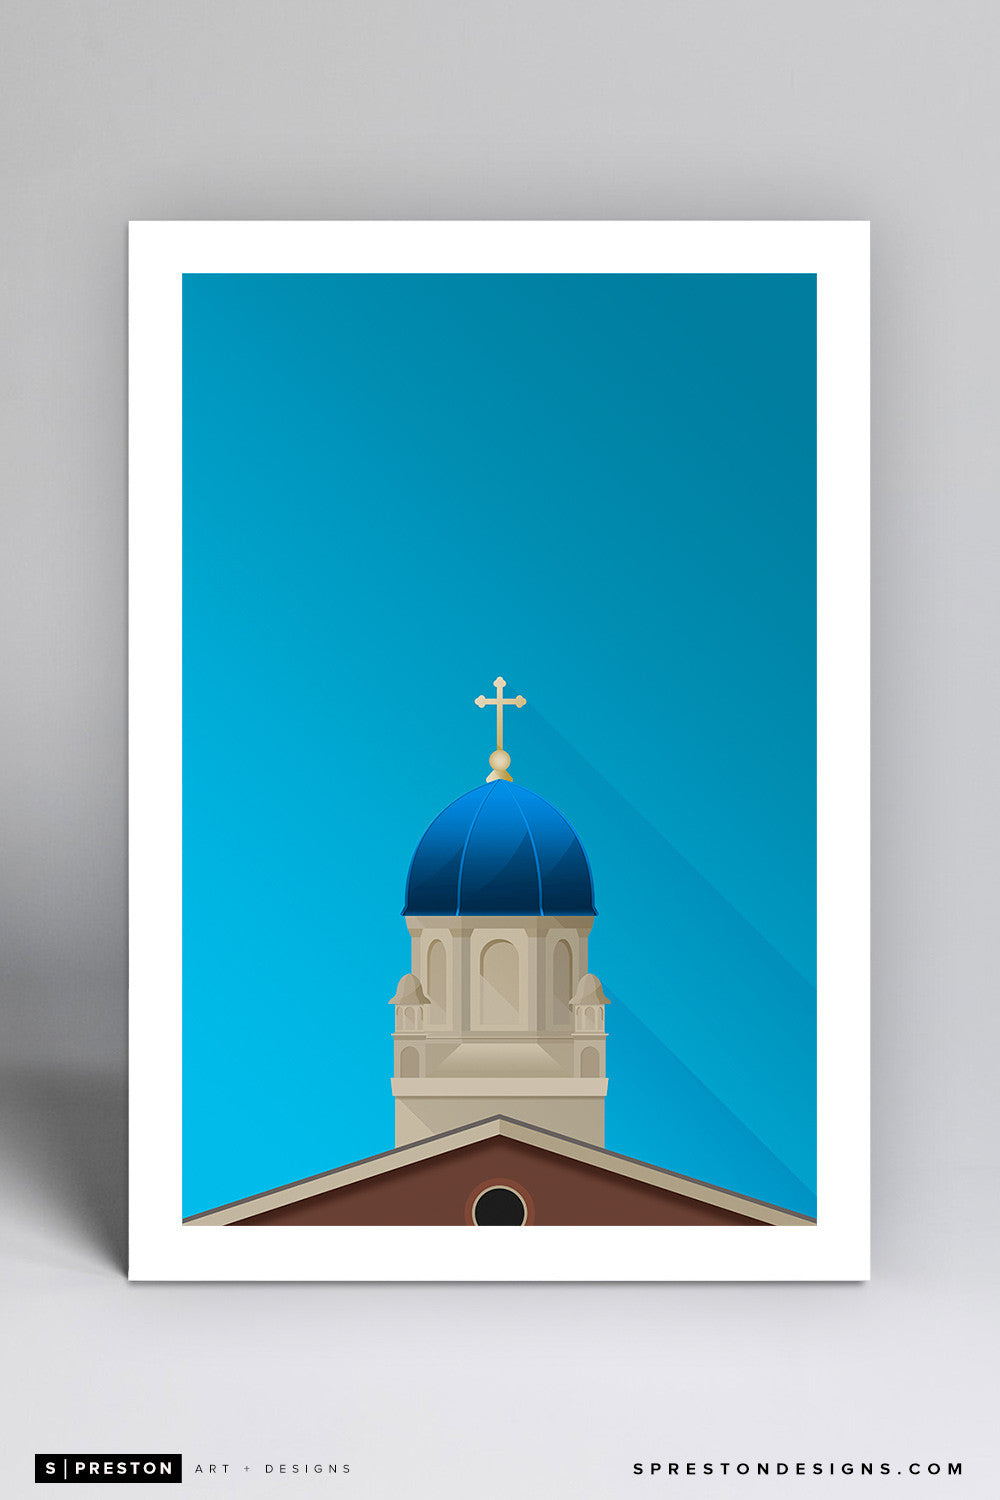 Minimalist University of Dayton - Chapel Art Print - University of Dayton - S. Preston Art + Designs